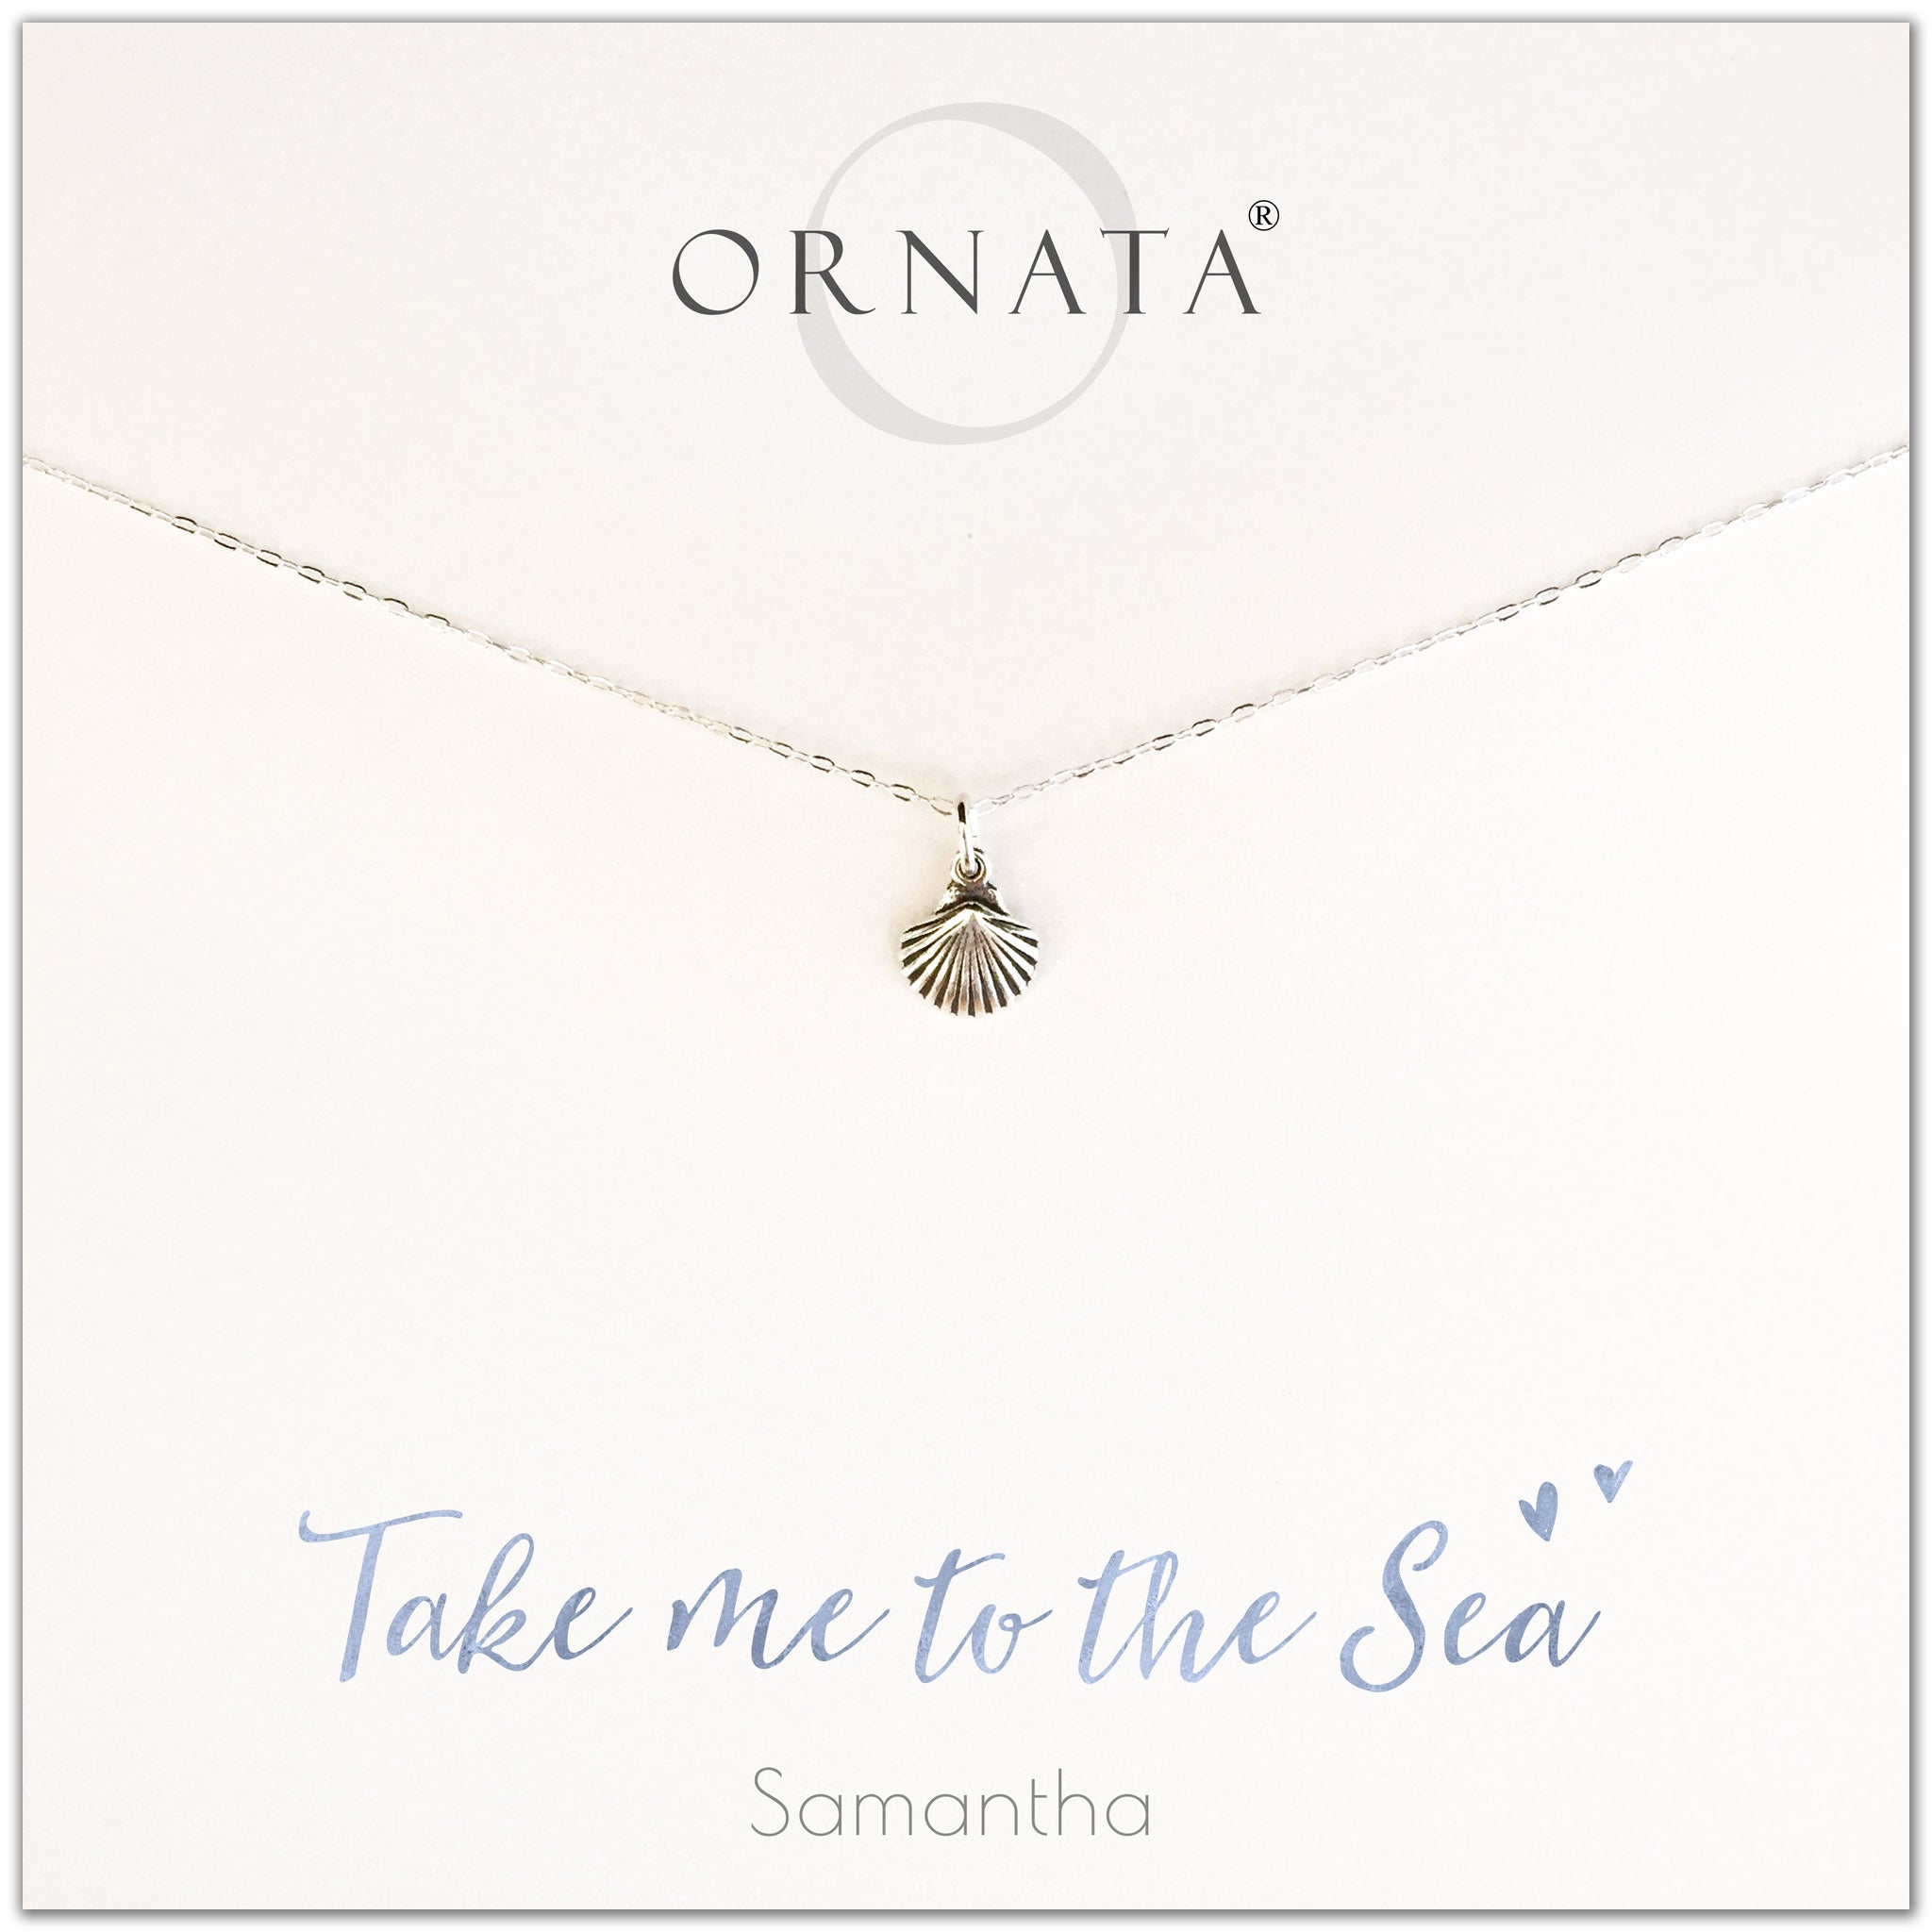 Take me to the sea. Personalized silver shell necklace. Our sterling silver custom jewelry is a perfect gift for people who love the ocean, the sea, seashells, or the beach.